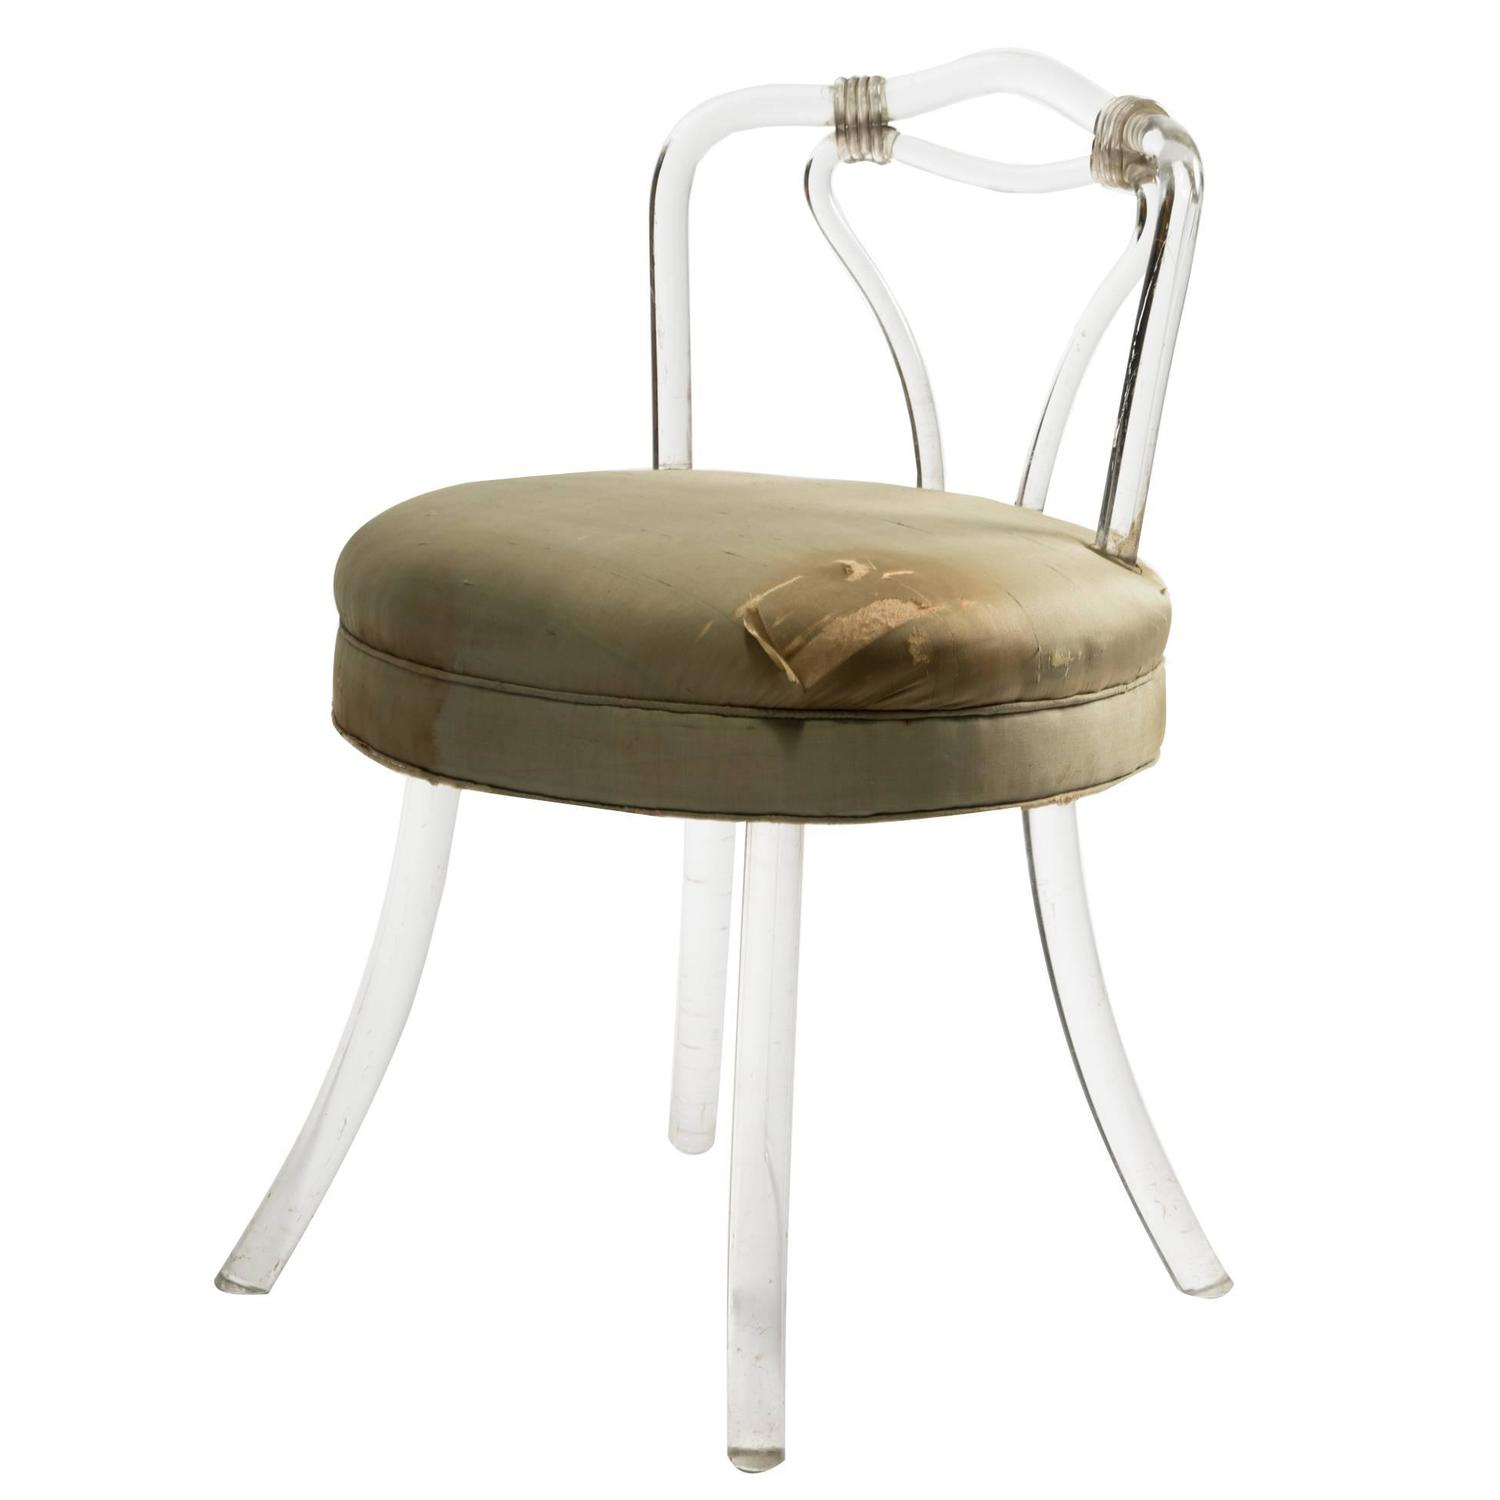 Lucite Vanity Chair 1930s Lucite Vanity Stool At 1stdibs